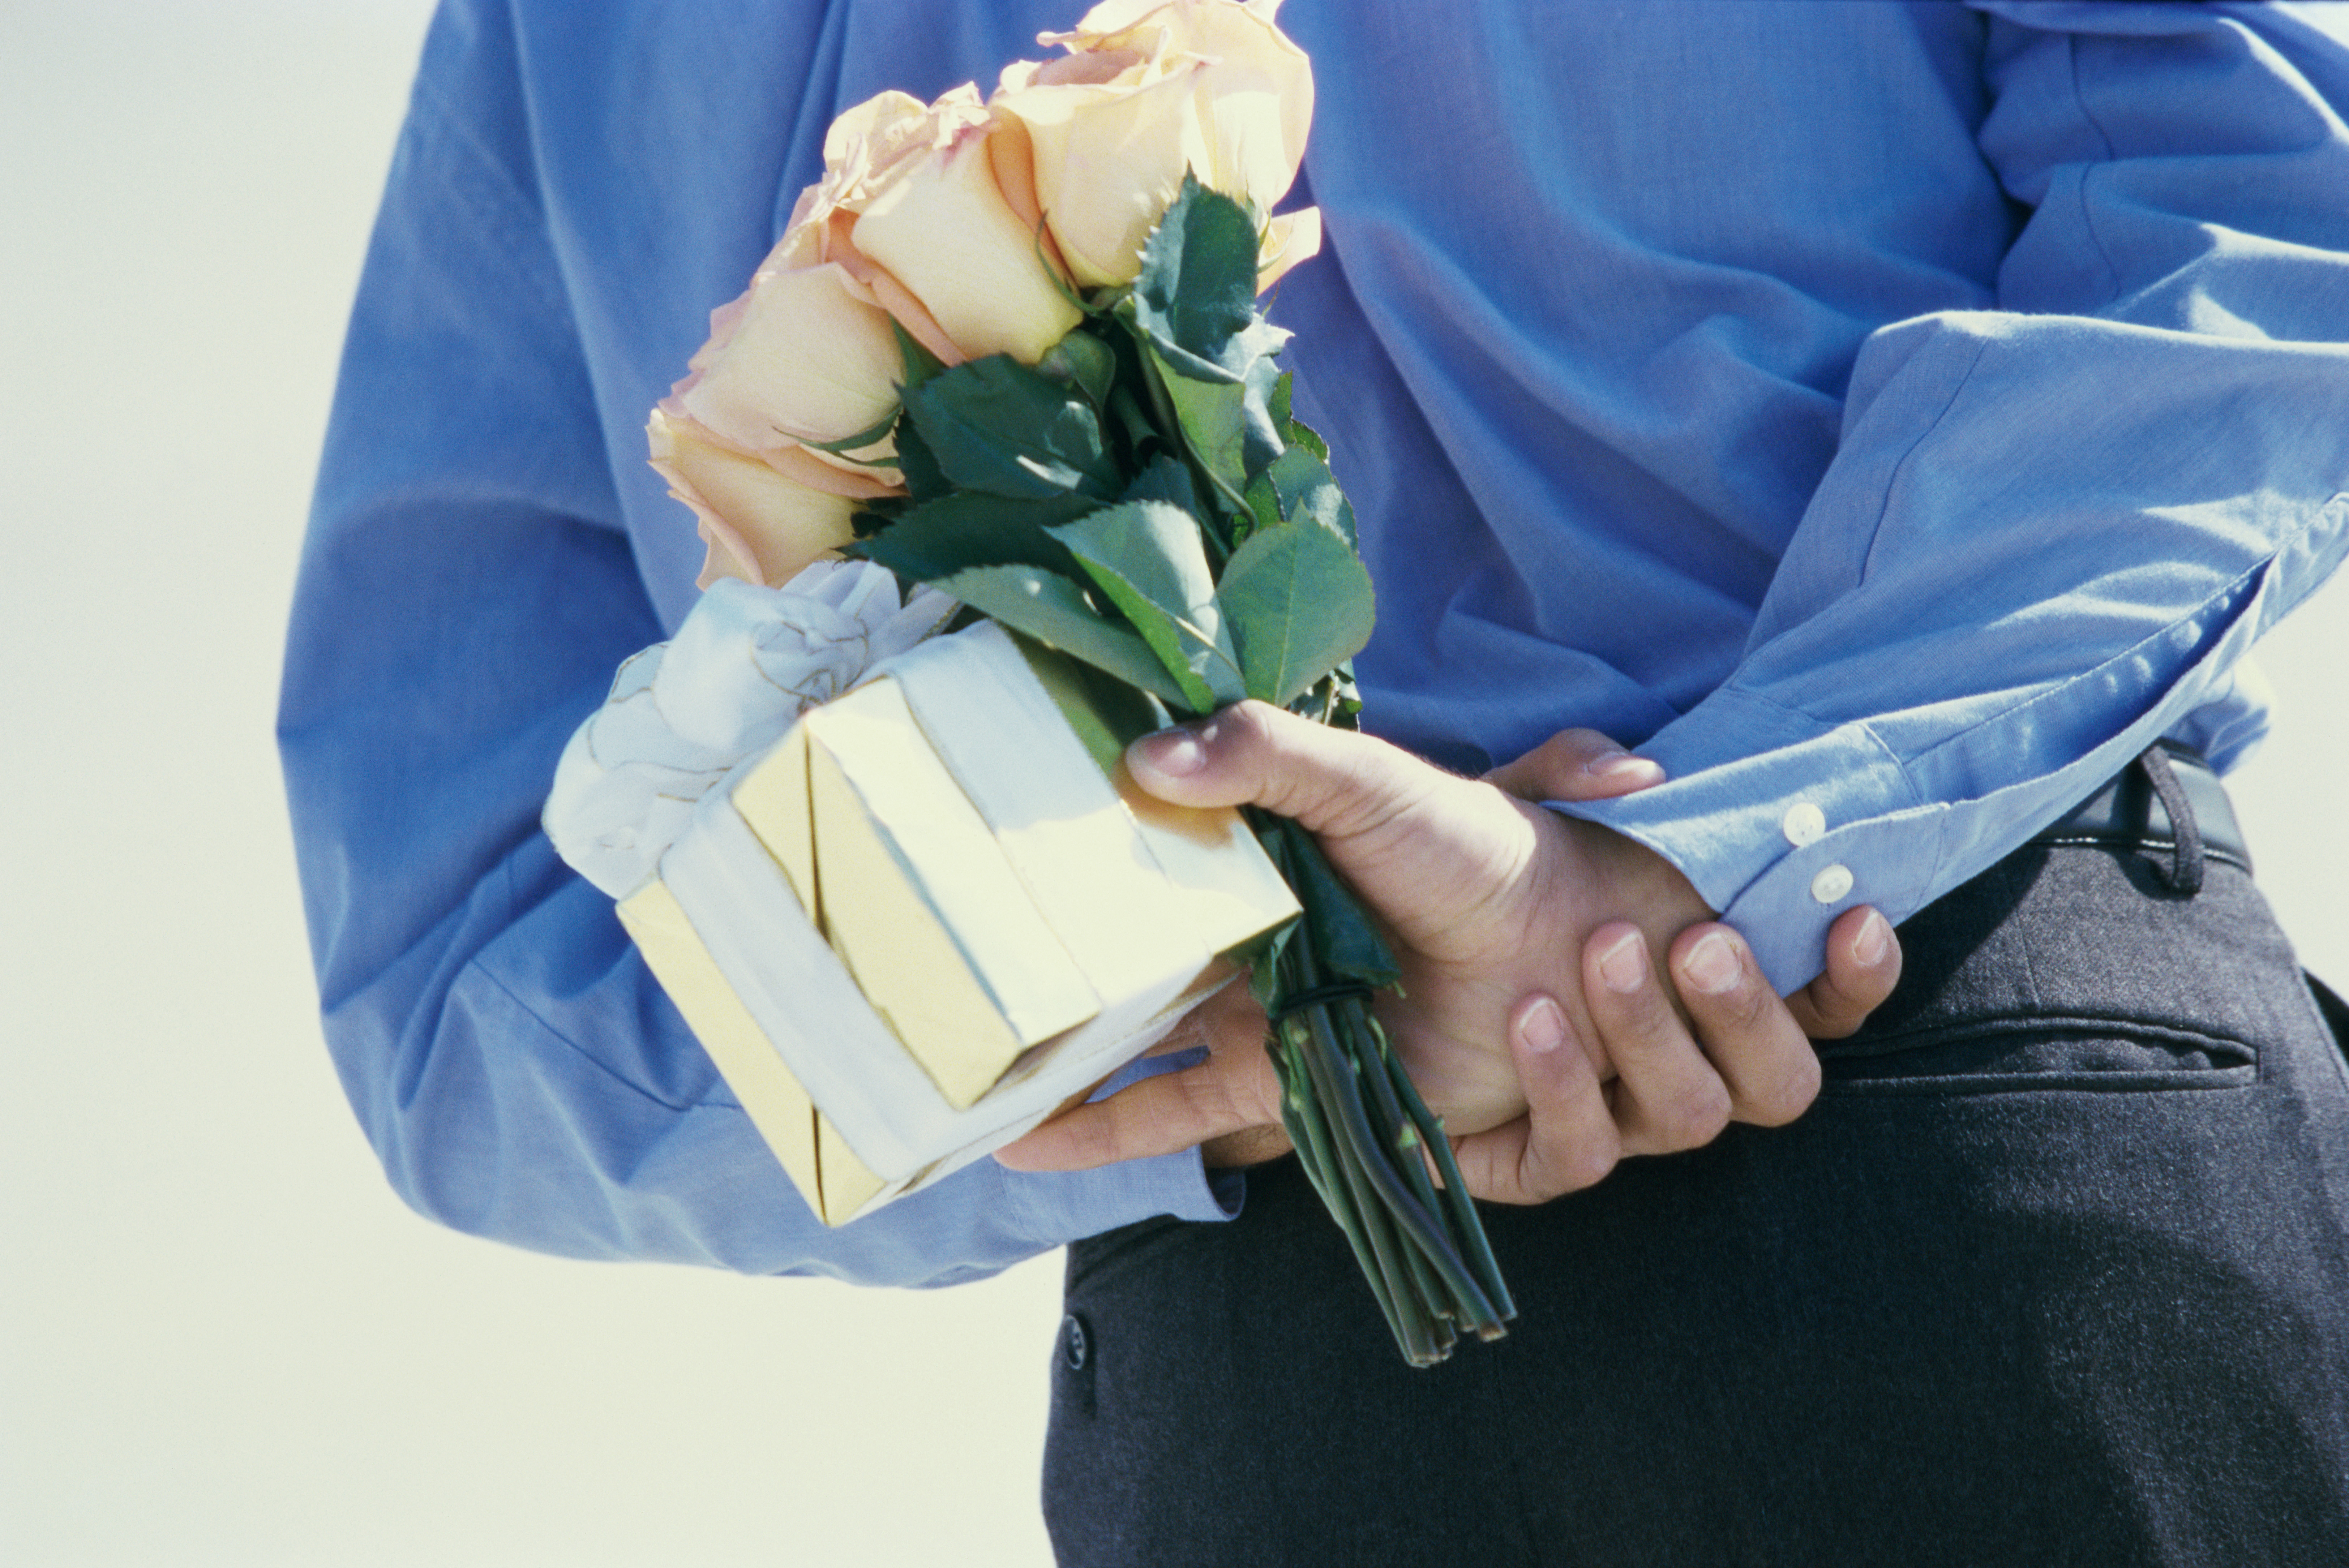 Rear view of a young man hiding flowers and a gift behind his back